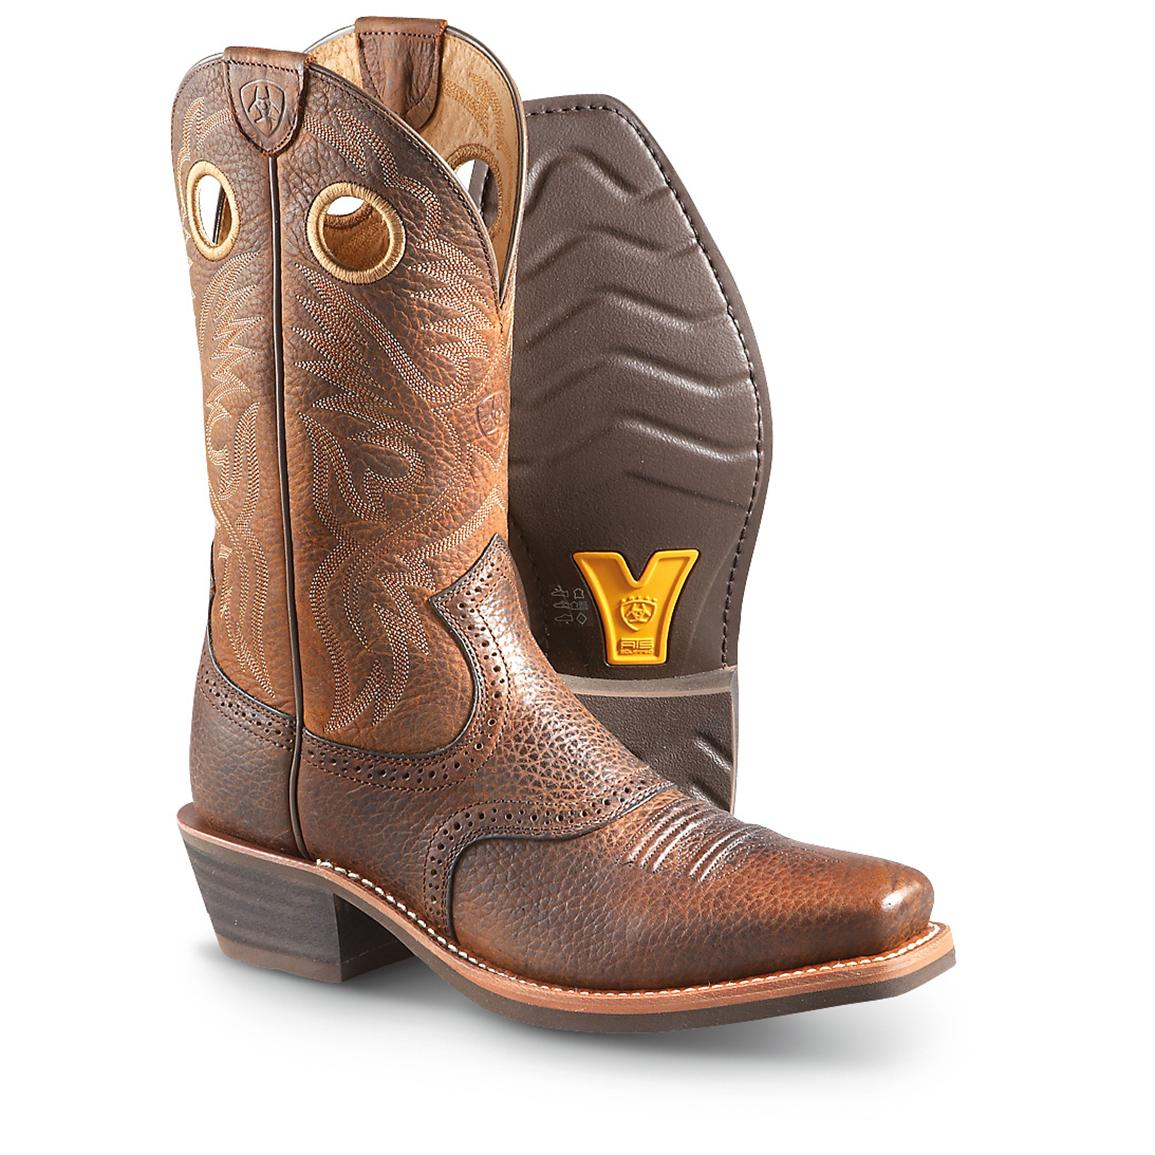 Mens Ariat Boots tiUmIkqv